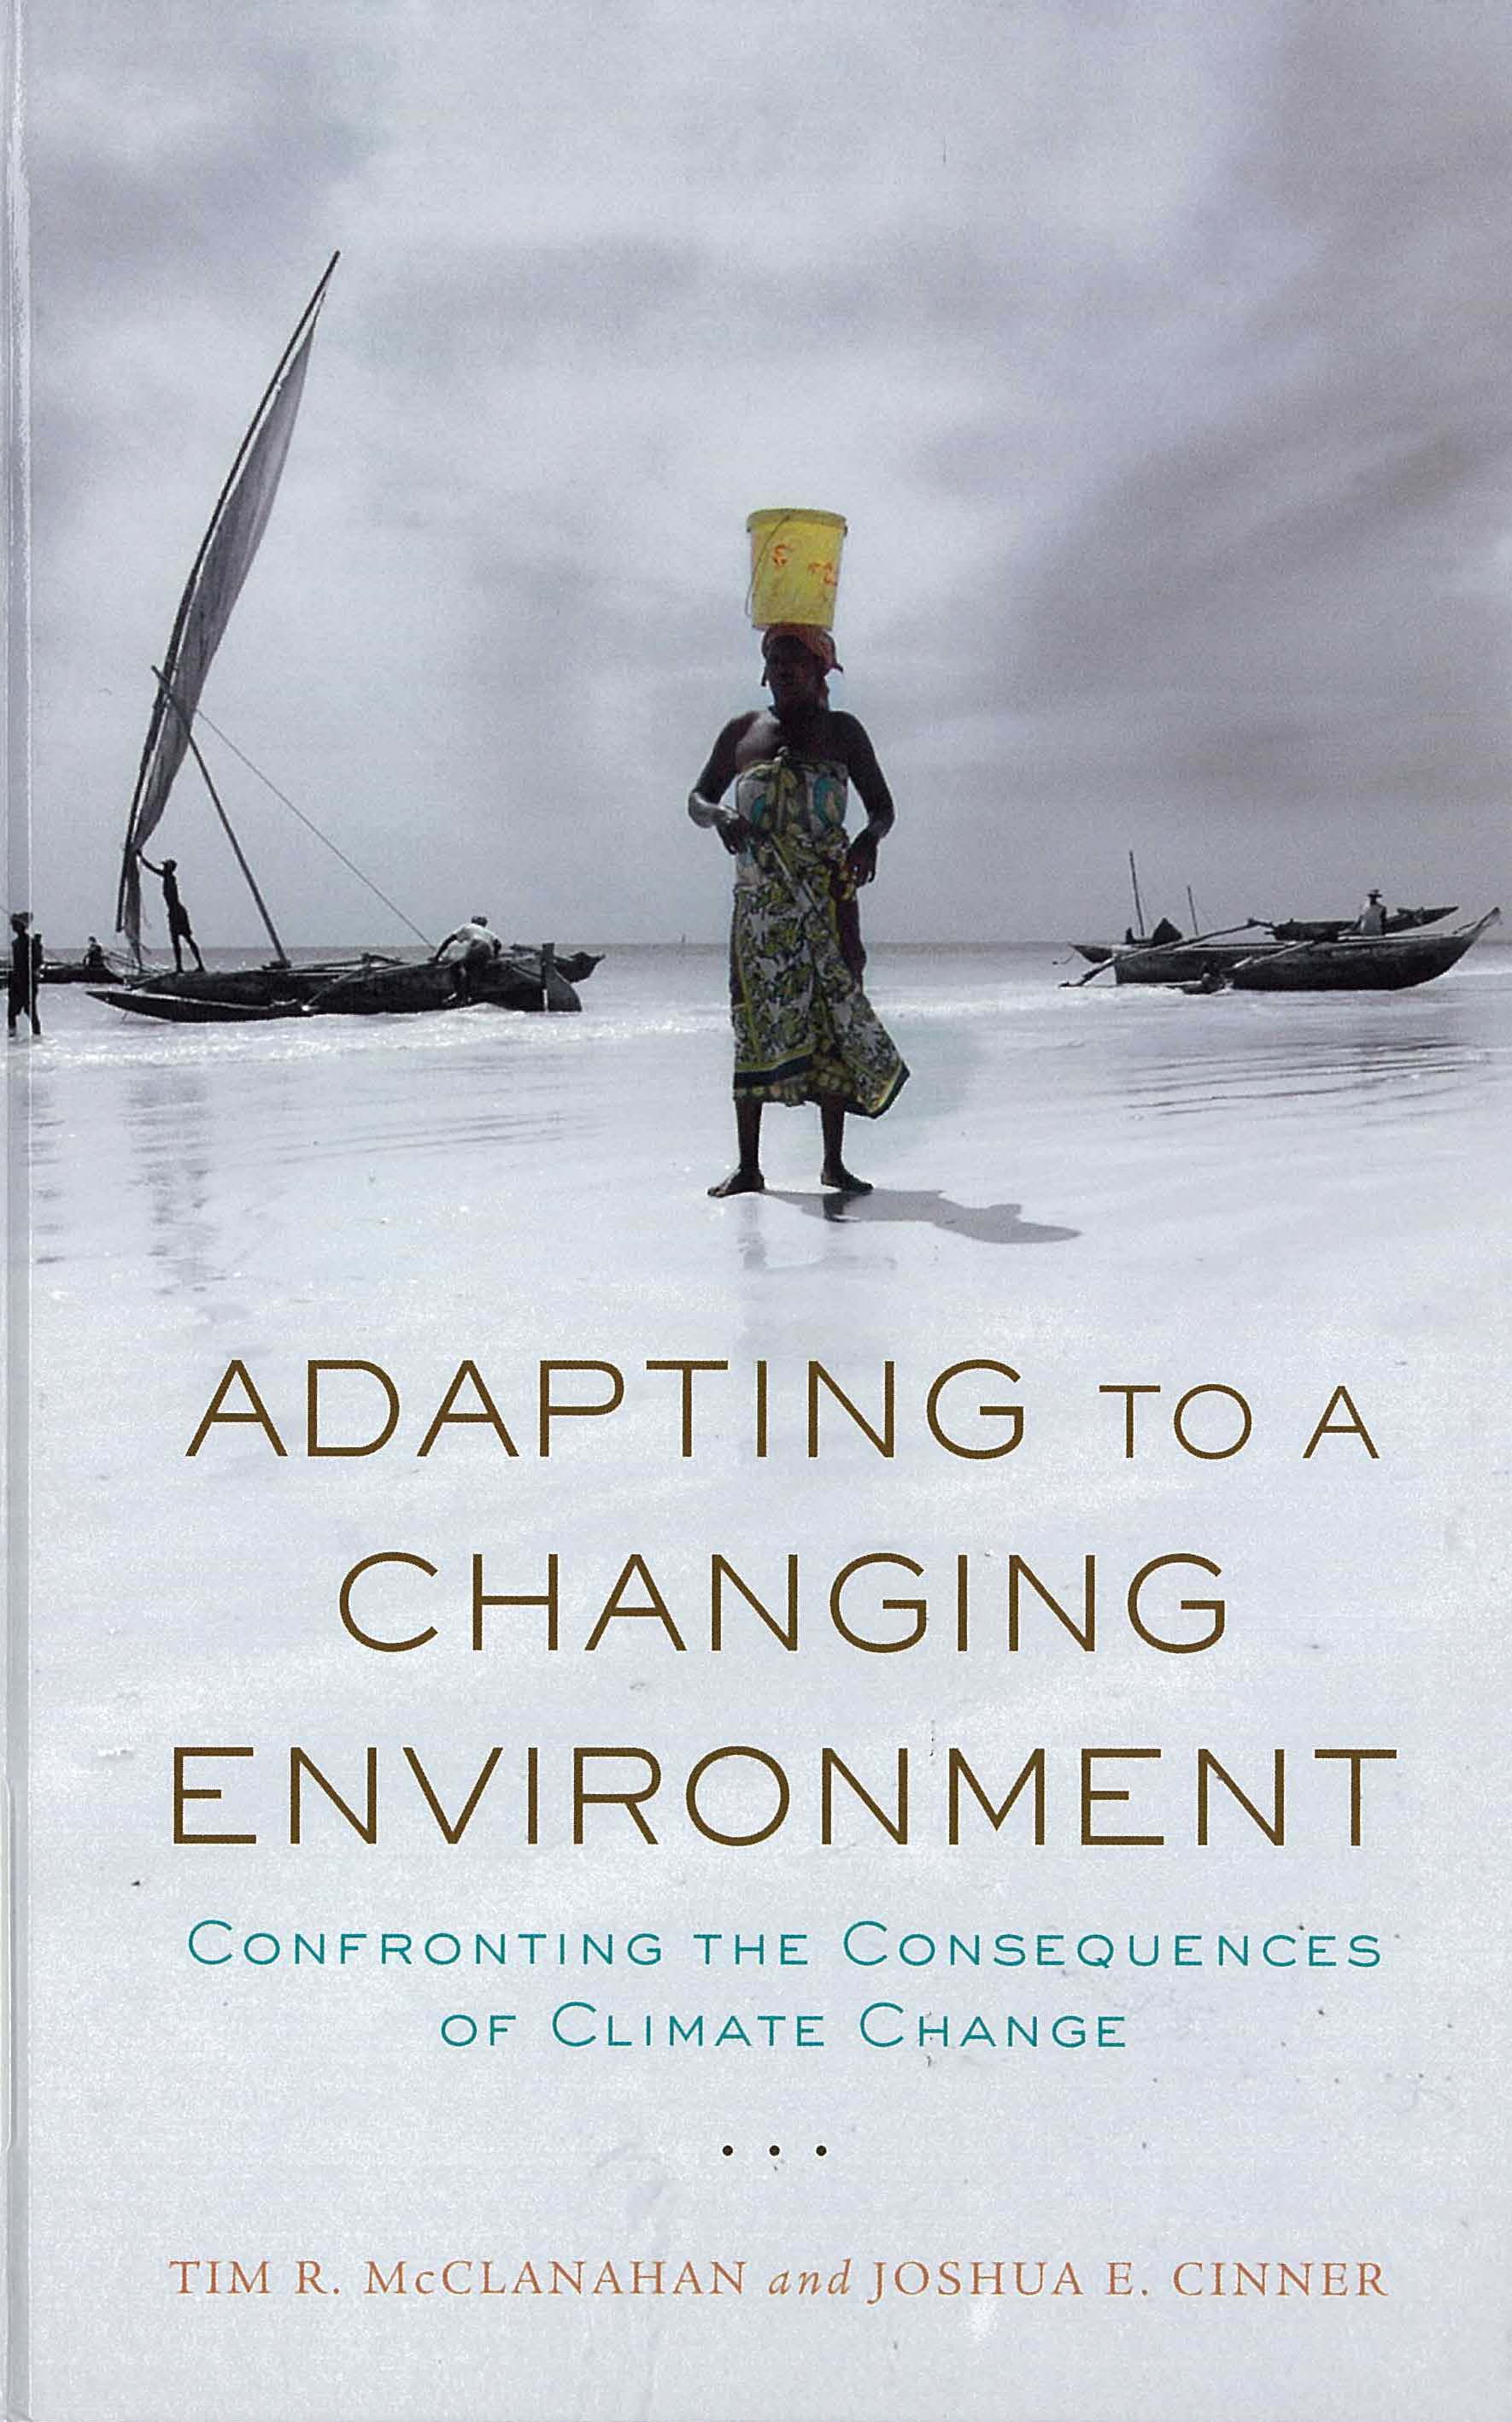 Adapting to a changing environment : confronting the consequences of climate change / Tim R. McClanahan and Joshua E. Cinner